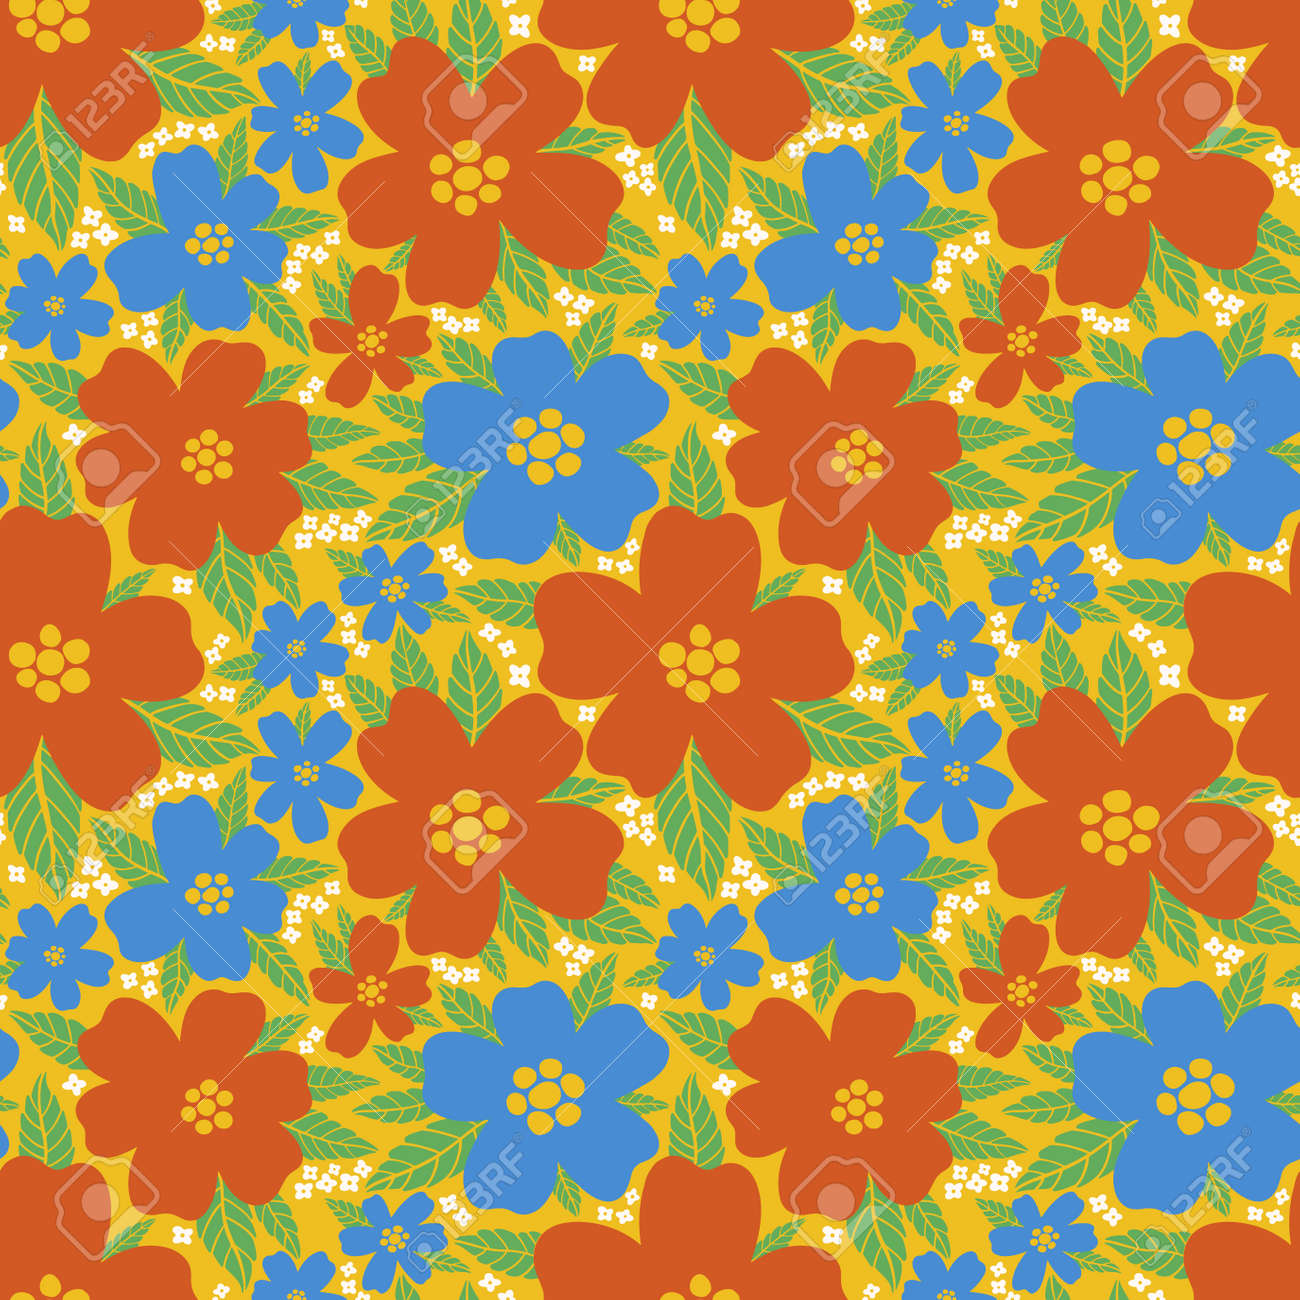 Seamless pattern floral flower abstract.Botanical vintage nature background.Print fashion textile. - 171023075